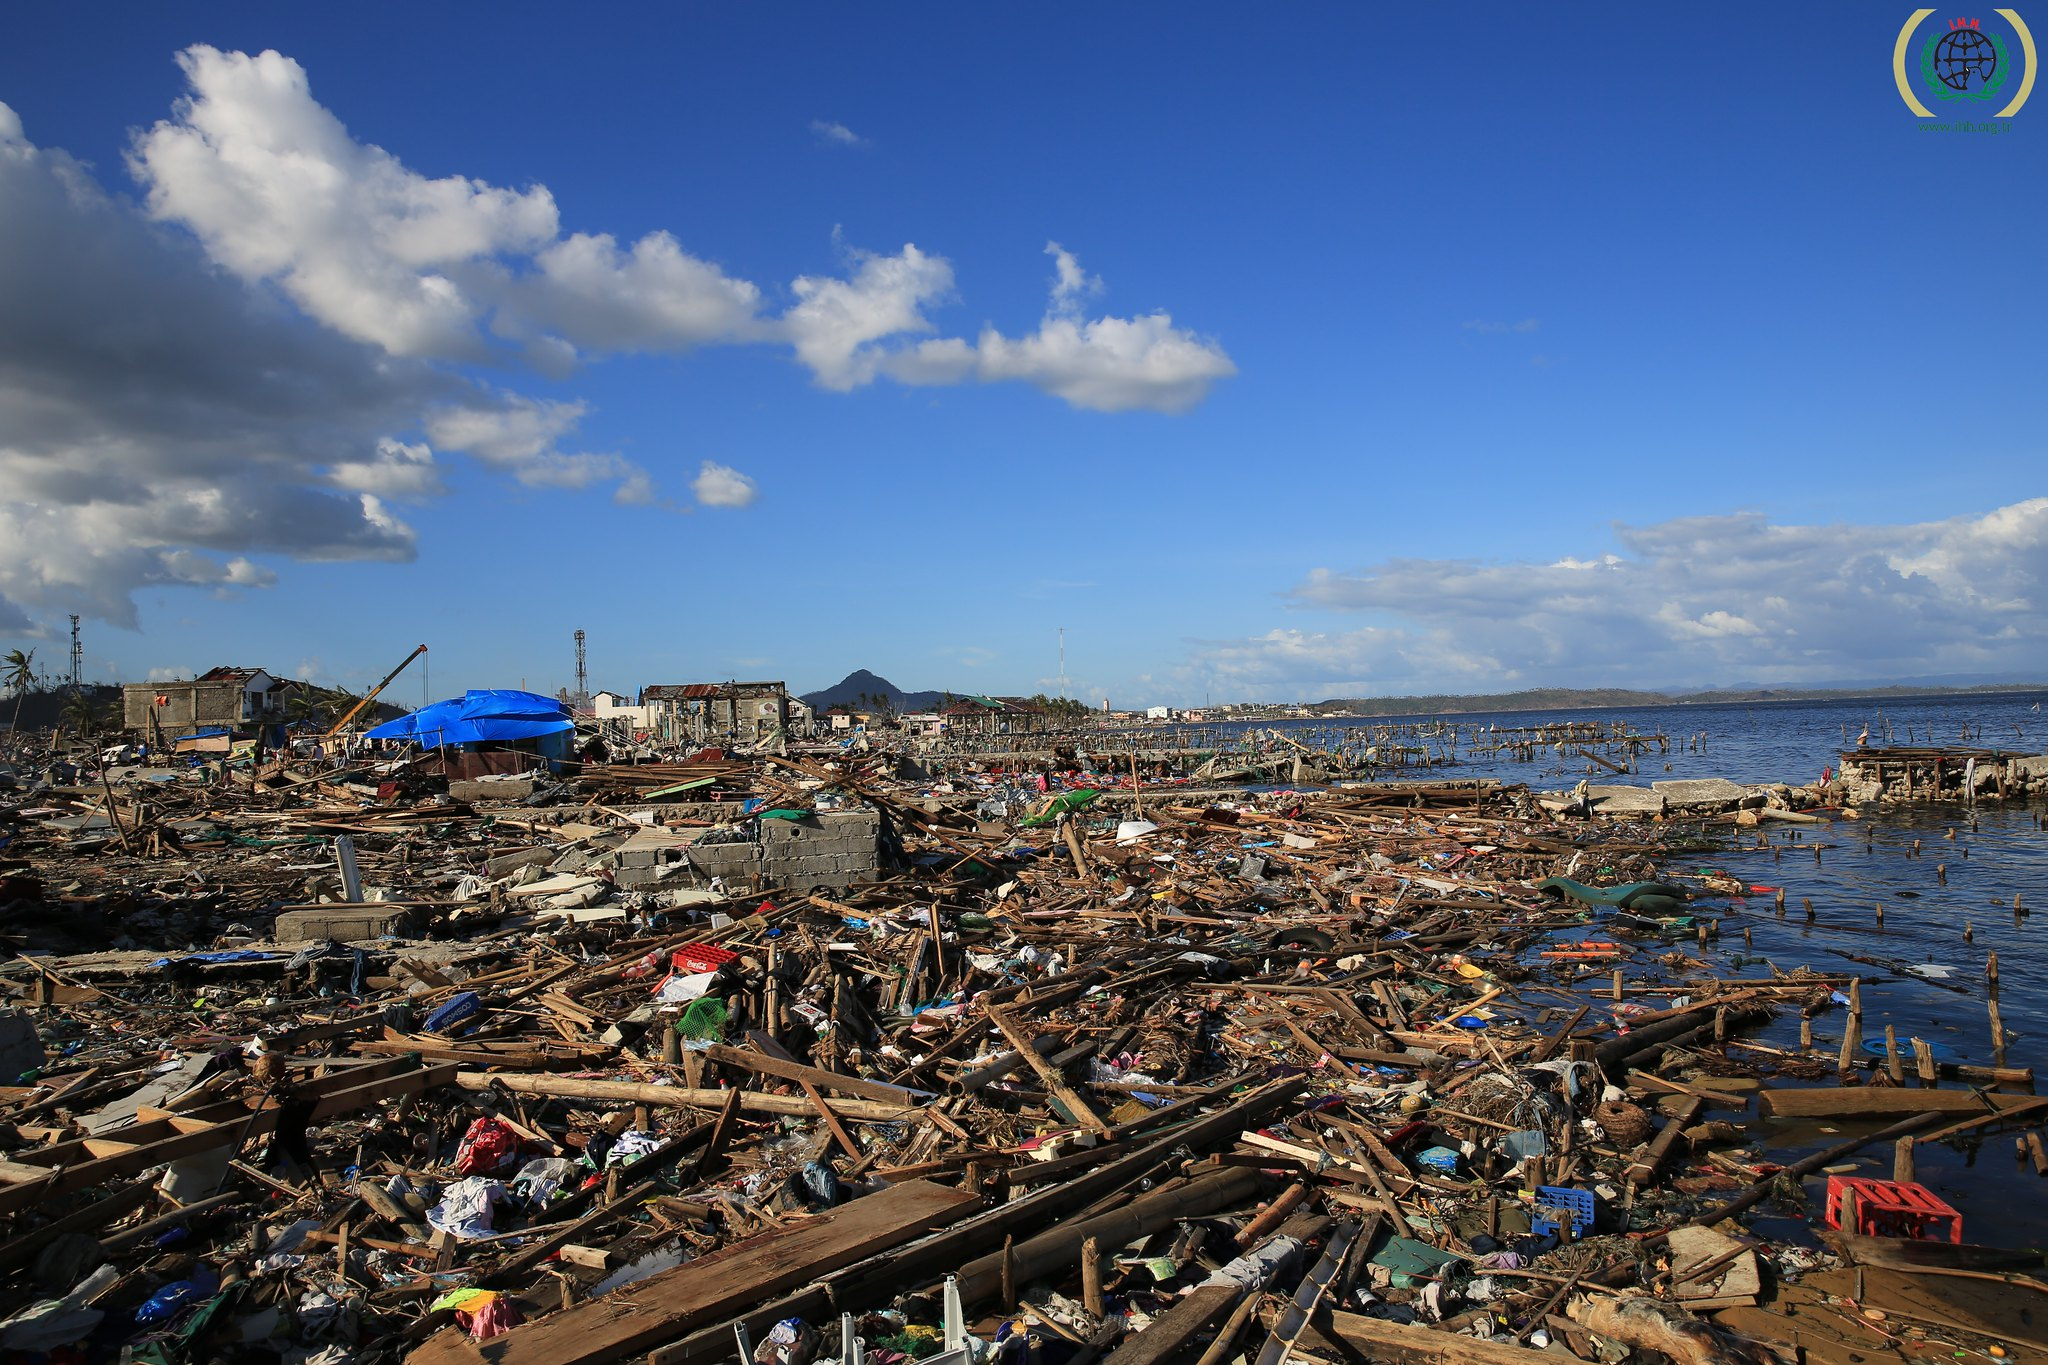 Philippines after Typhoon Haiyan 2013(圖/IHH Humanitarian Relief Foundation/CC BY-NC-ND 2.0)